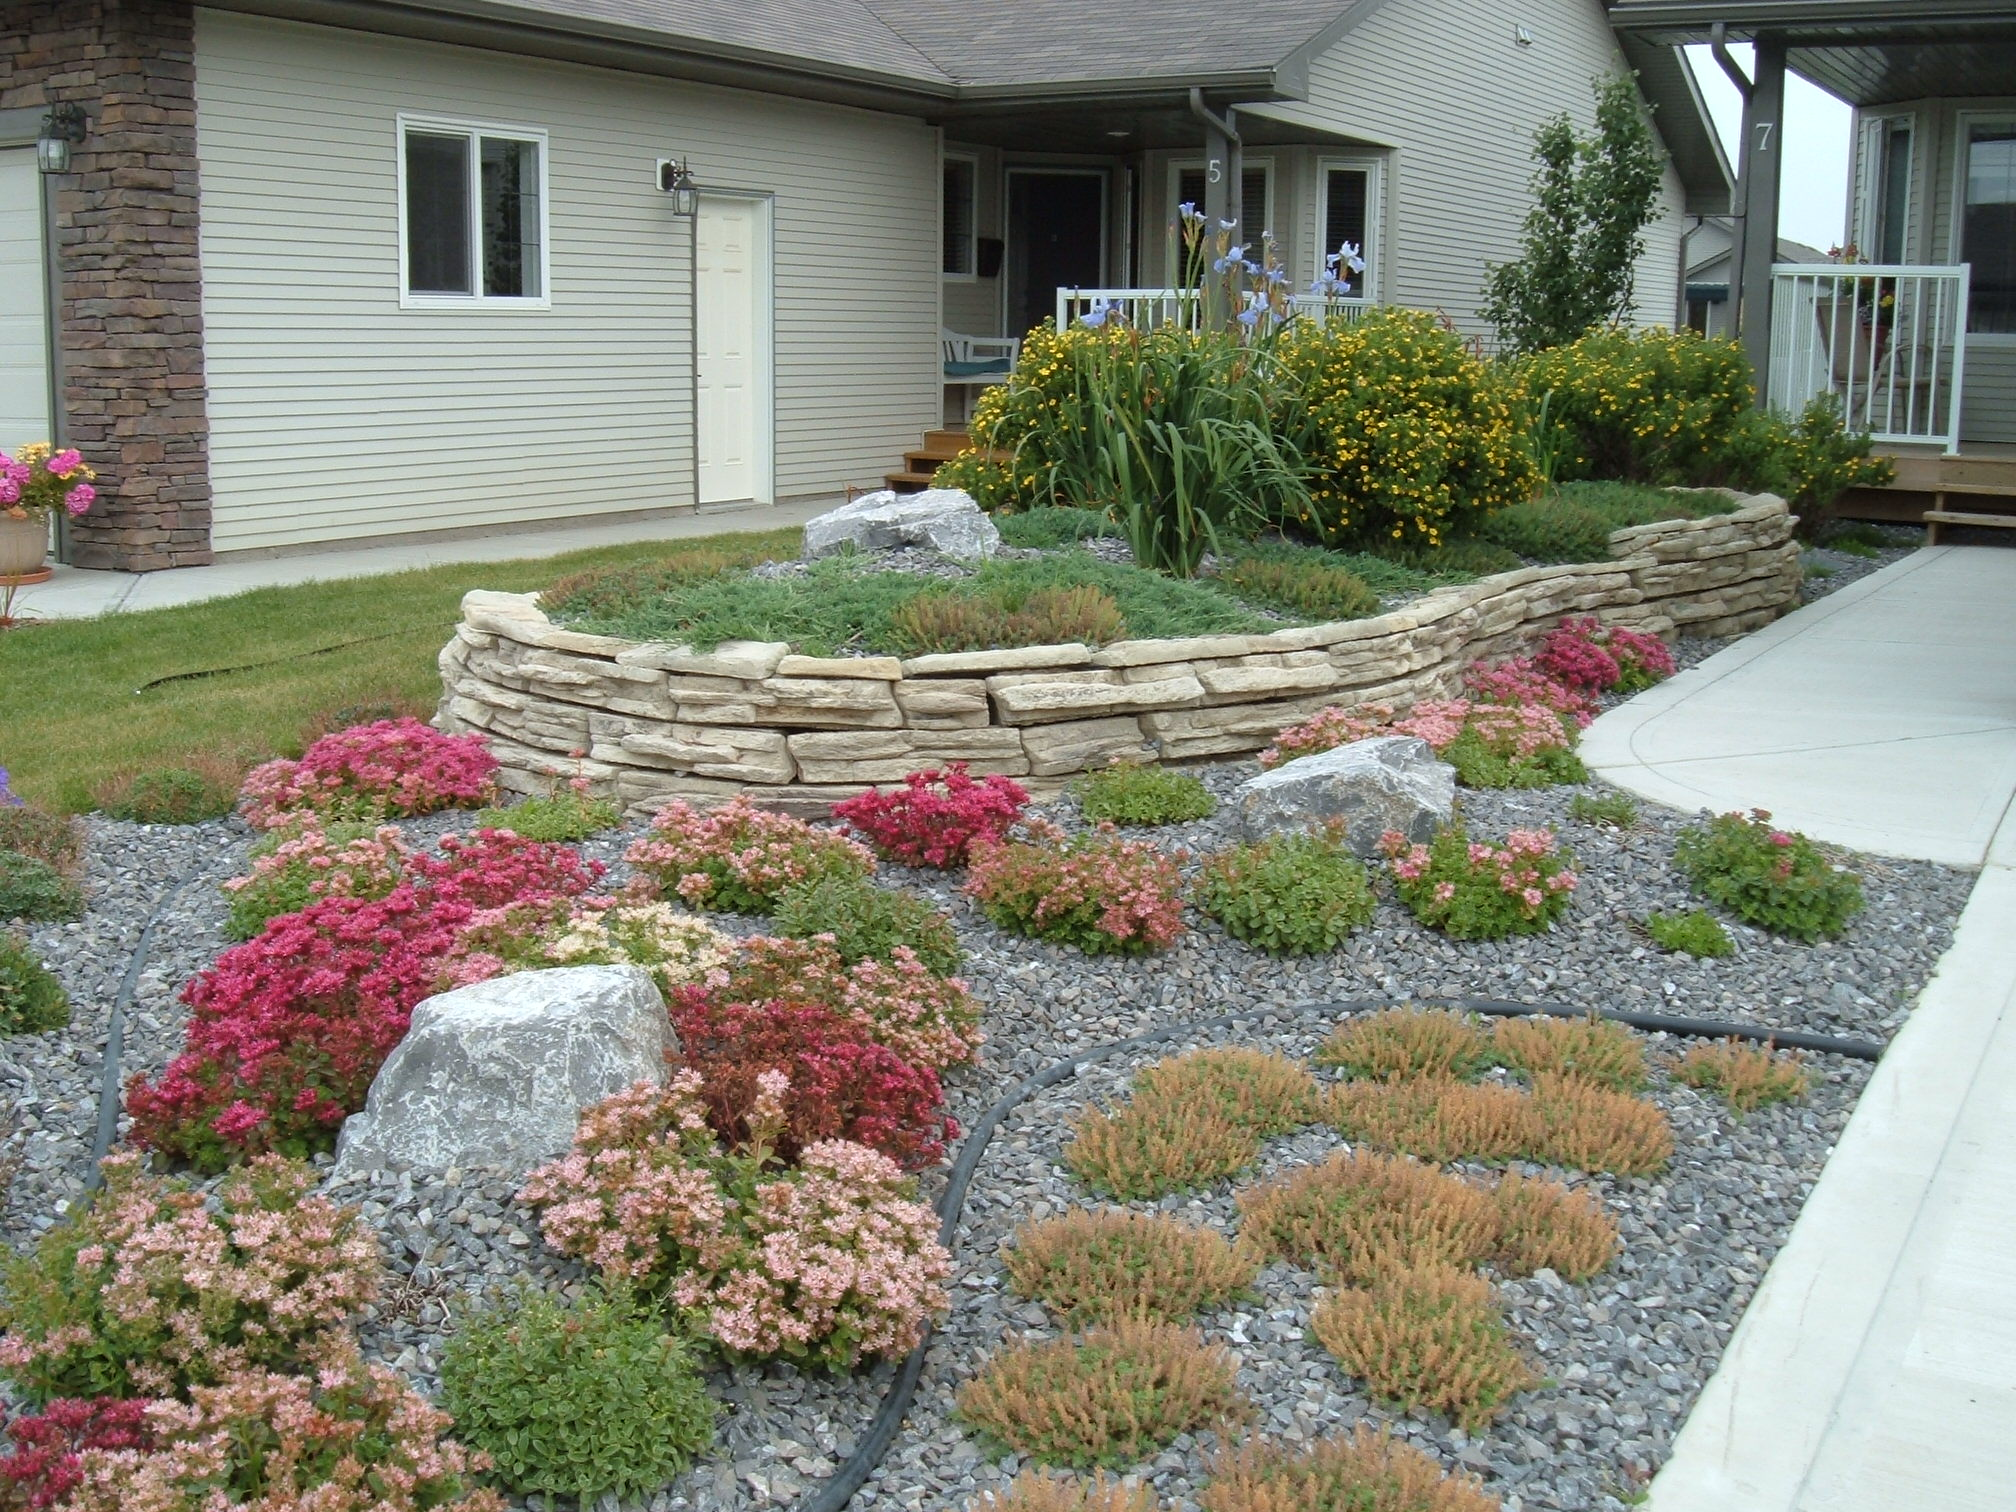 1000 images about drought resistant garden ideas on pinterest